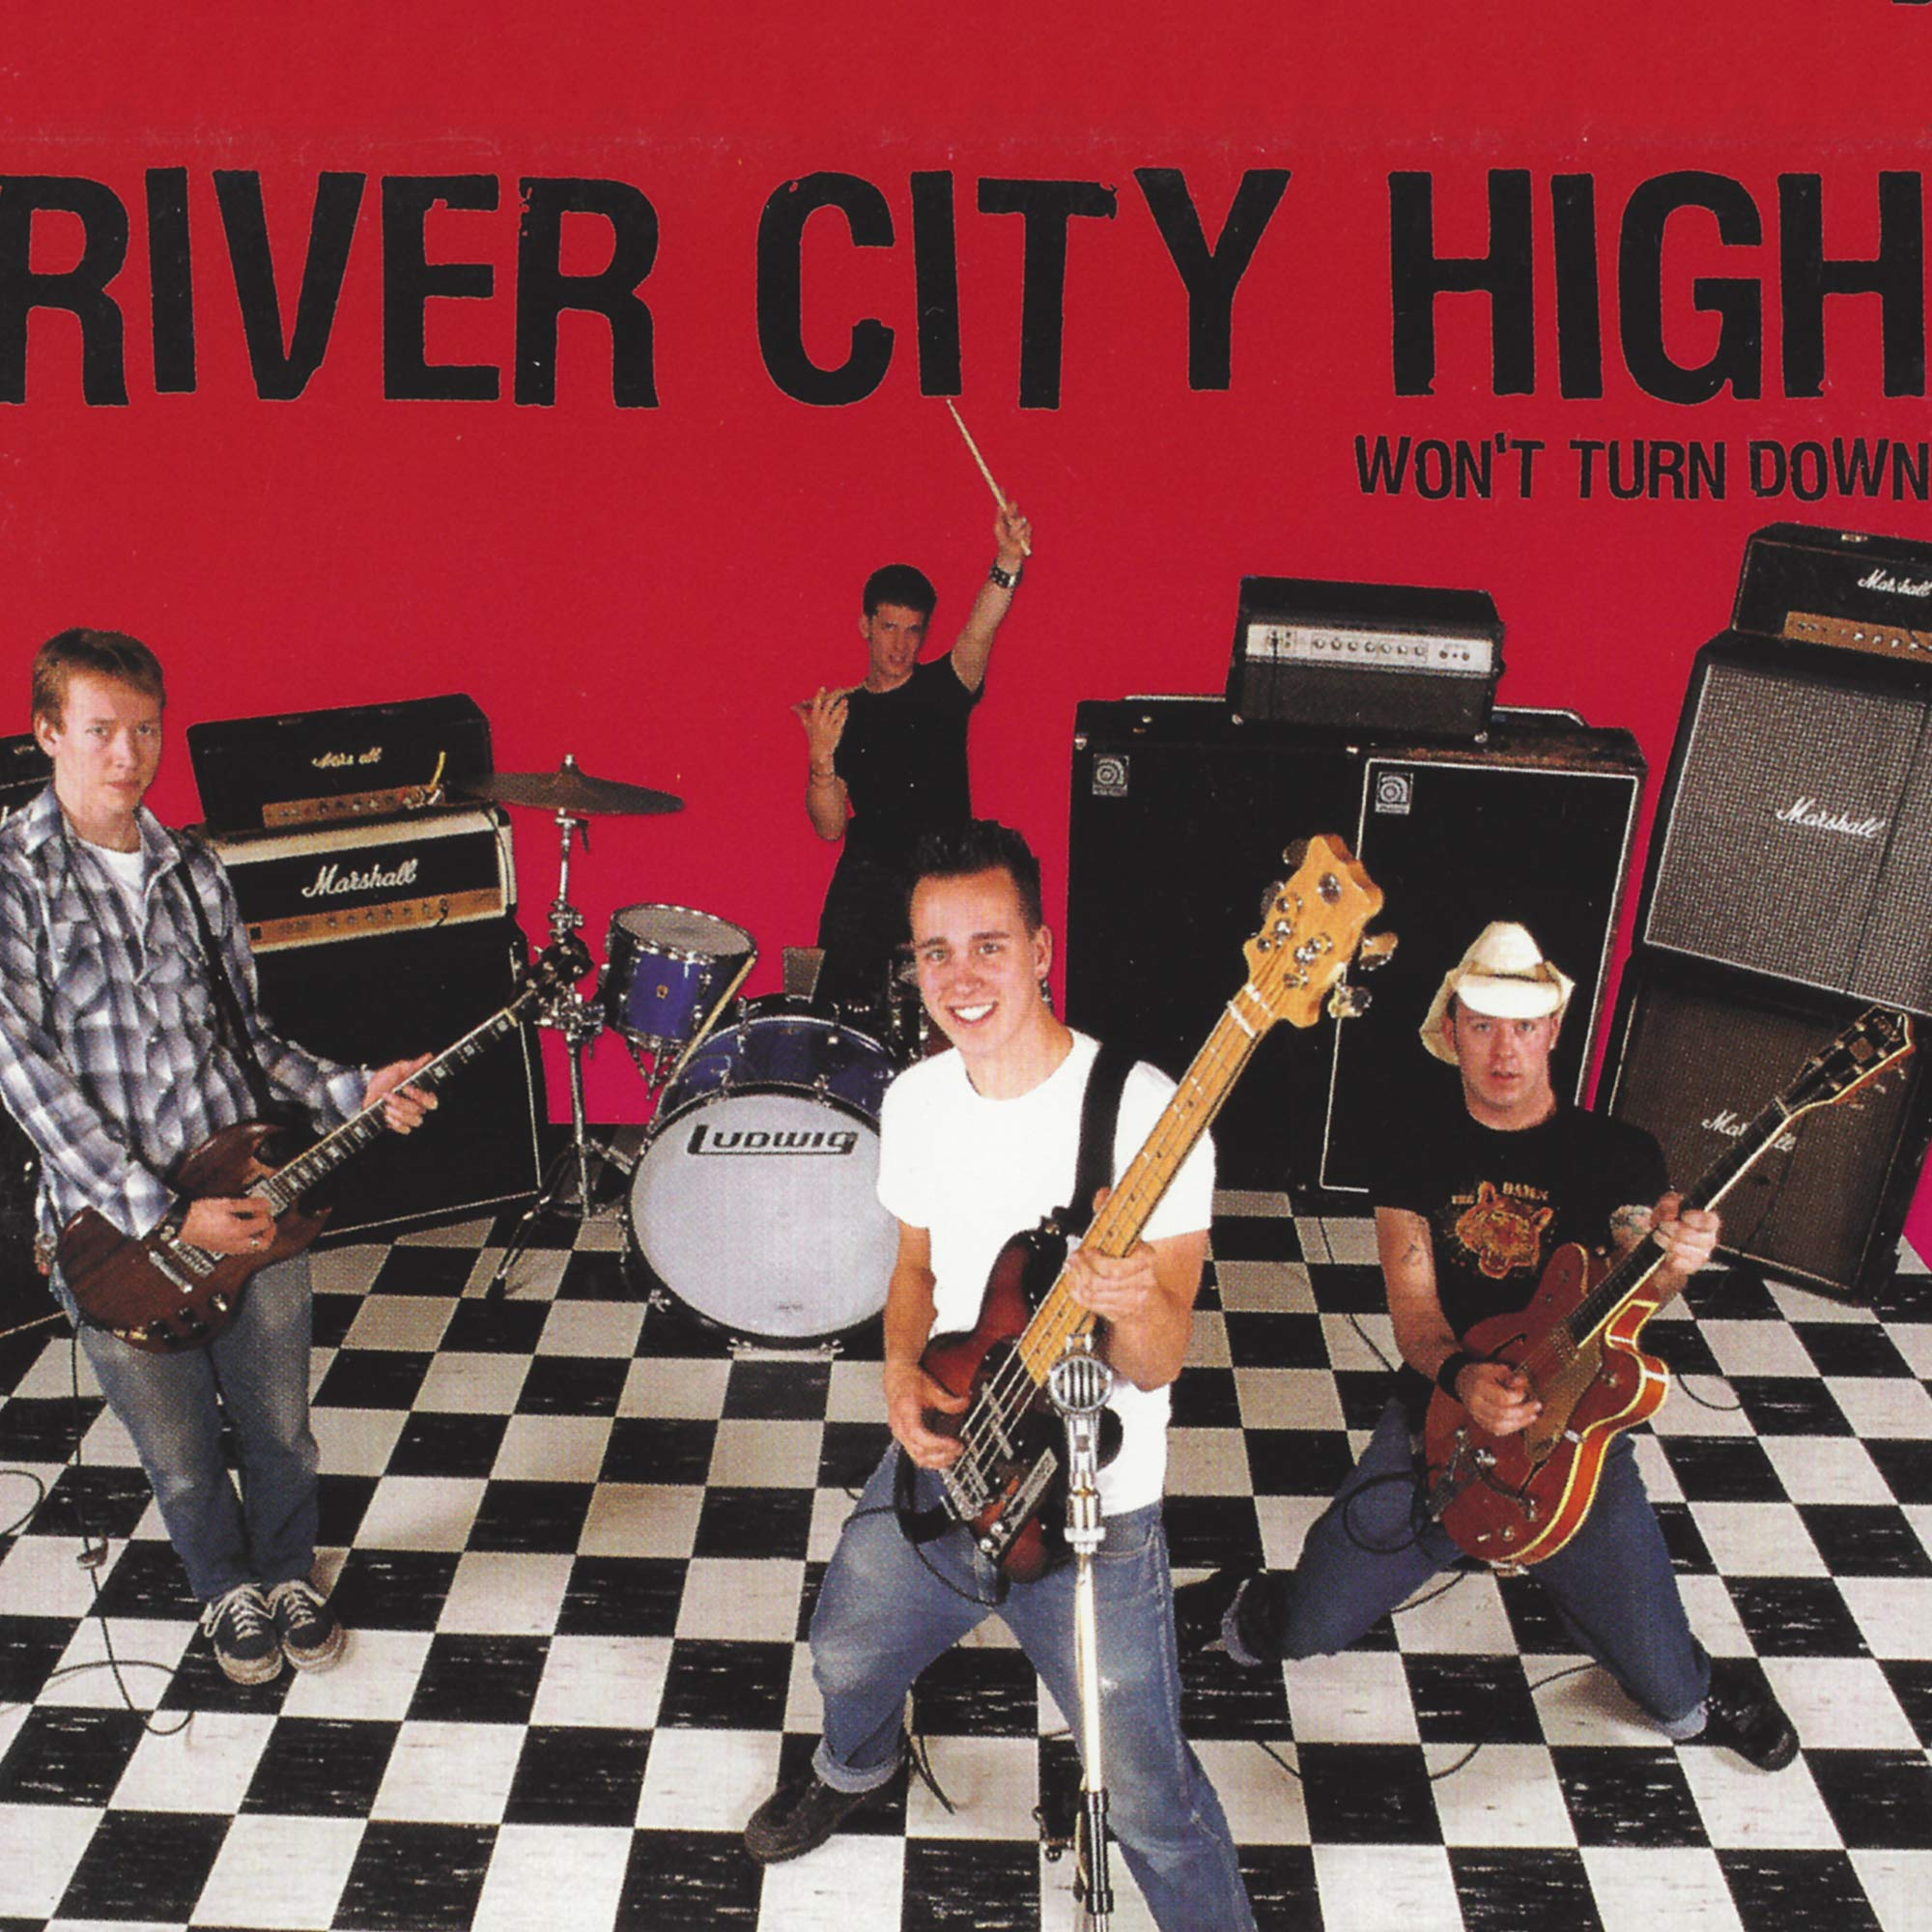 River City High - Won't Turn Down (2001) [FLAC] Download